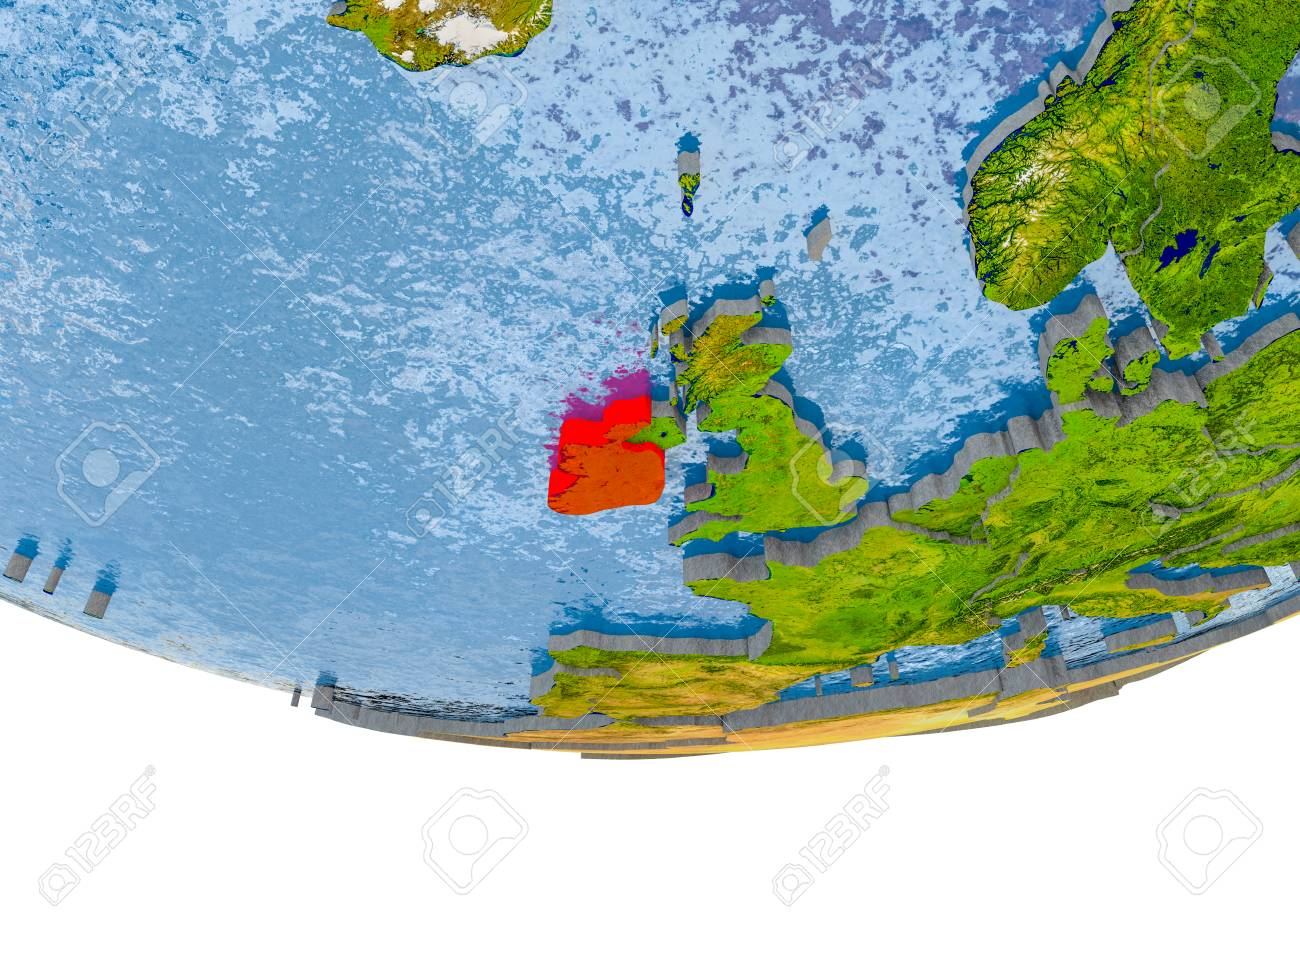 Ireland on 3d model of globe with real land surface visible stock illustration ireland on 3d model of globe with real land surface visible country borders and water in place of ocean 3d illustration gumiabroncs Image collections